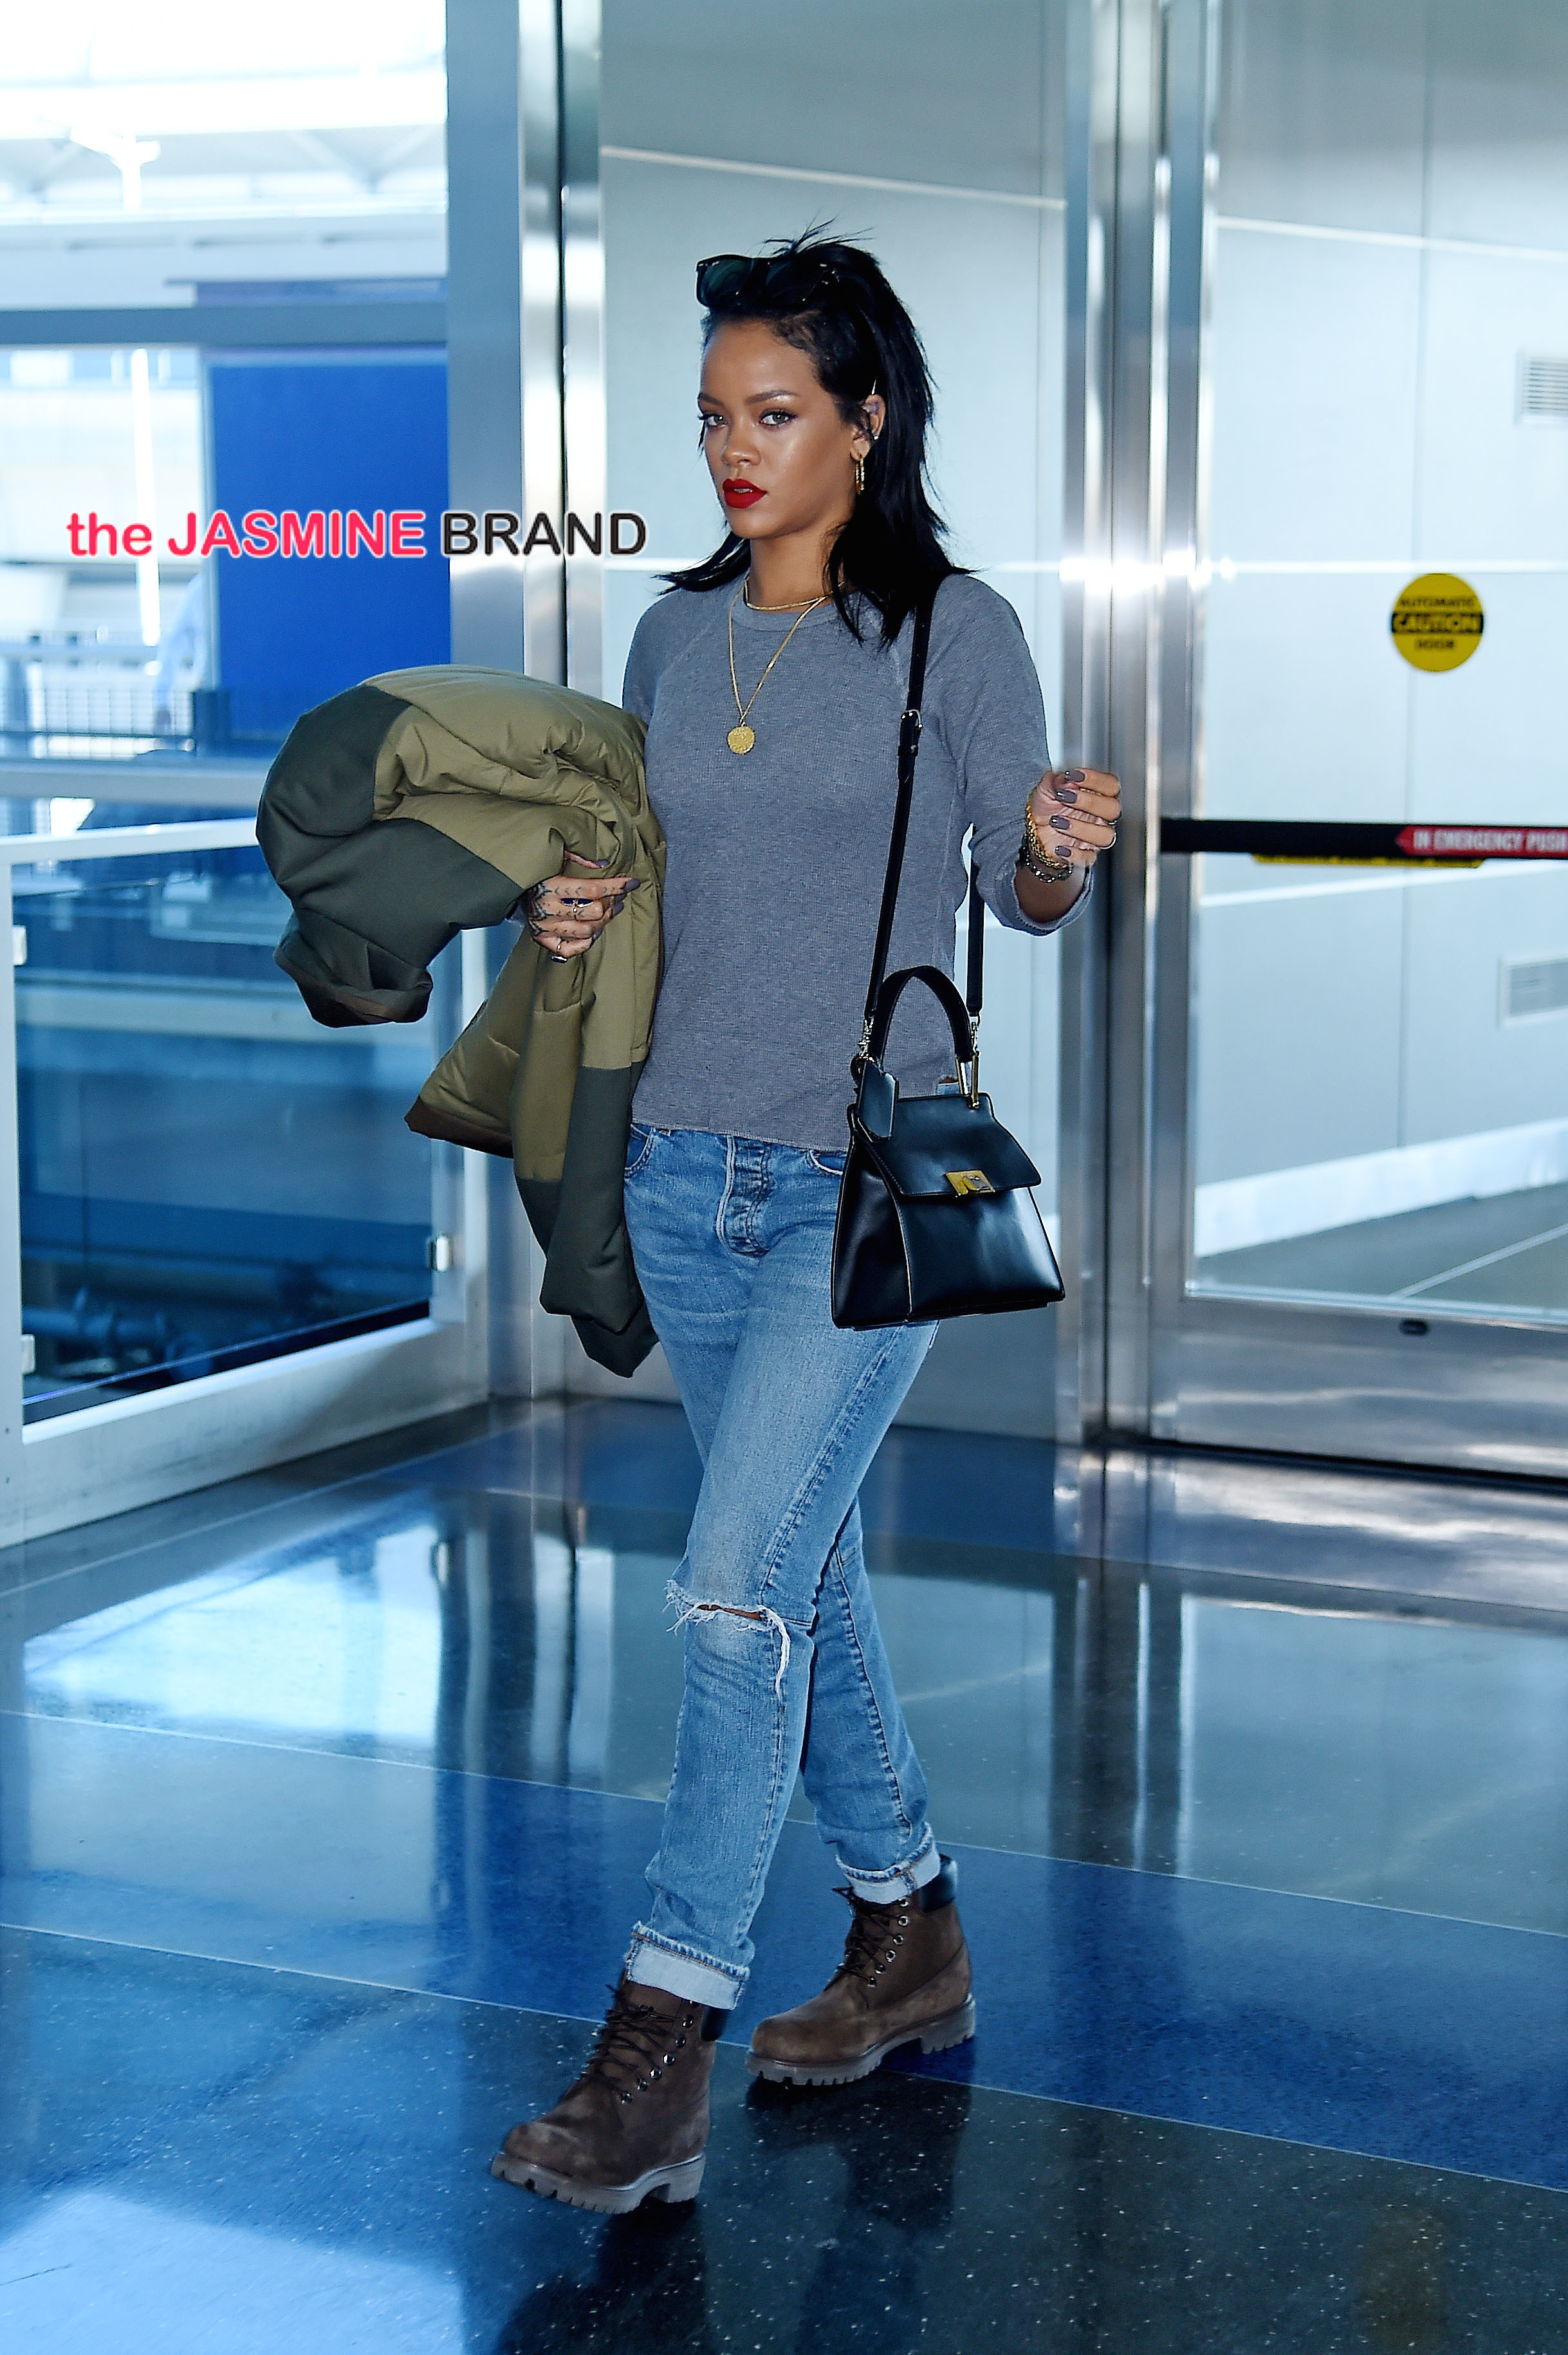 Rihanna looks stylish in ripped jeans as she strolls through JFK airport, NYC